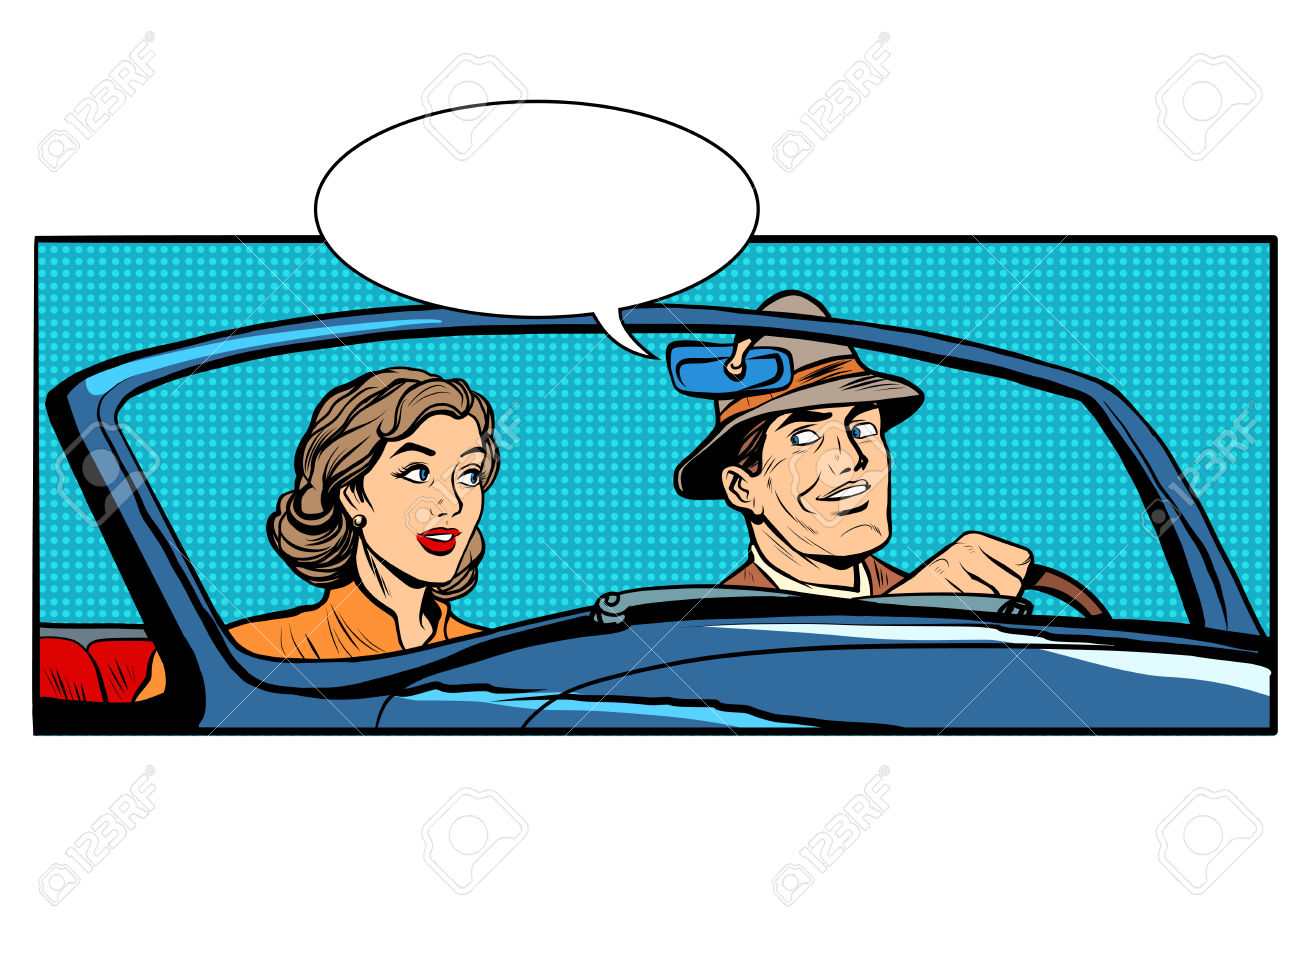 A man and a woman in a car clipart vector A man and a woman in a car clipart - ClipartFest vector